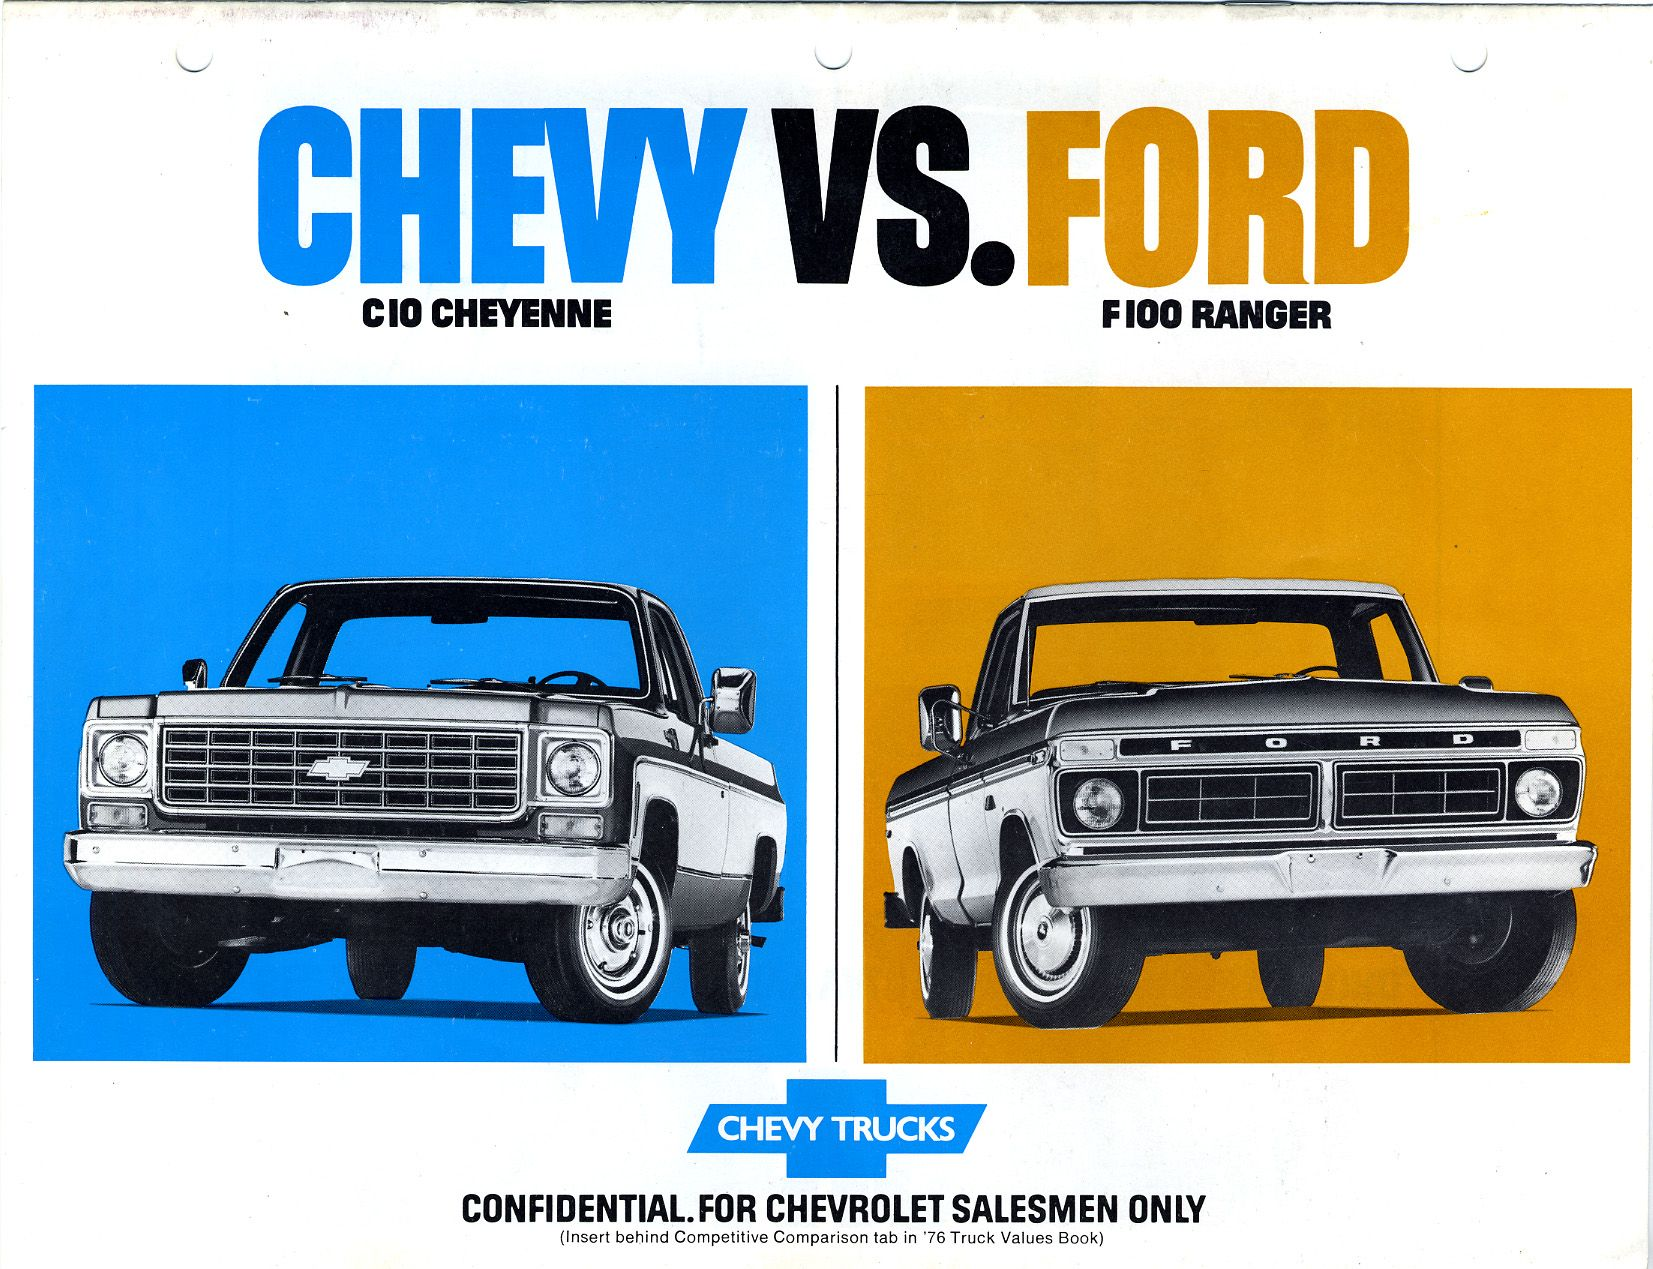 funny chevy vs ford pictures - photo #21